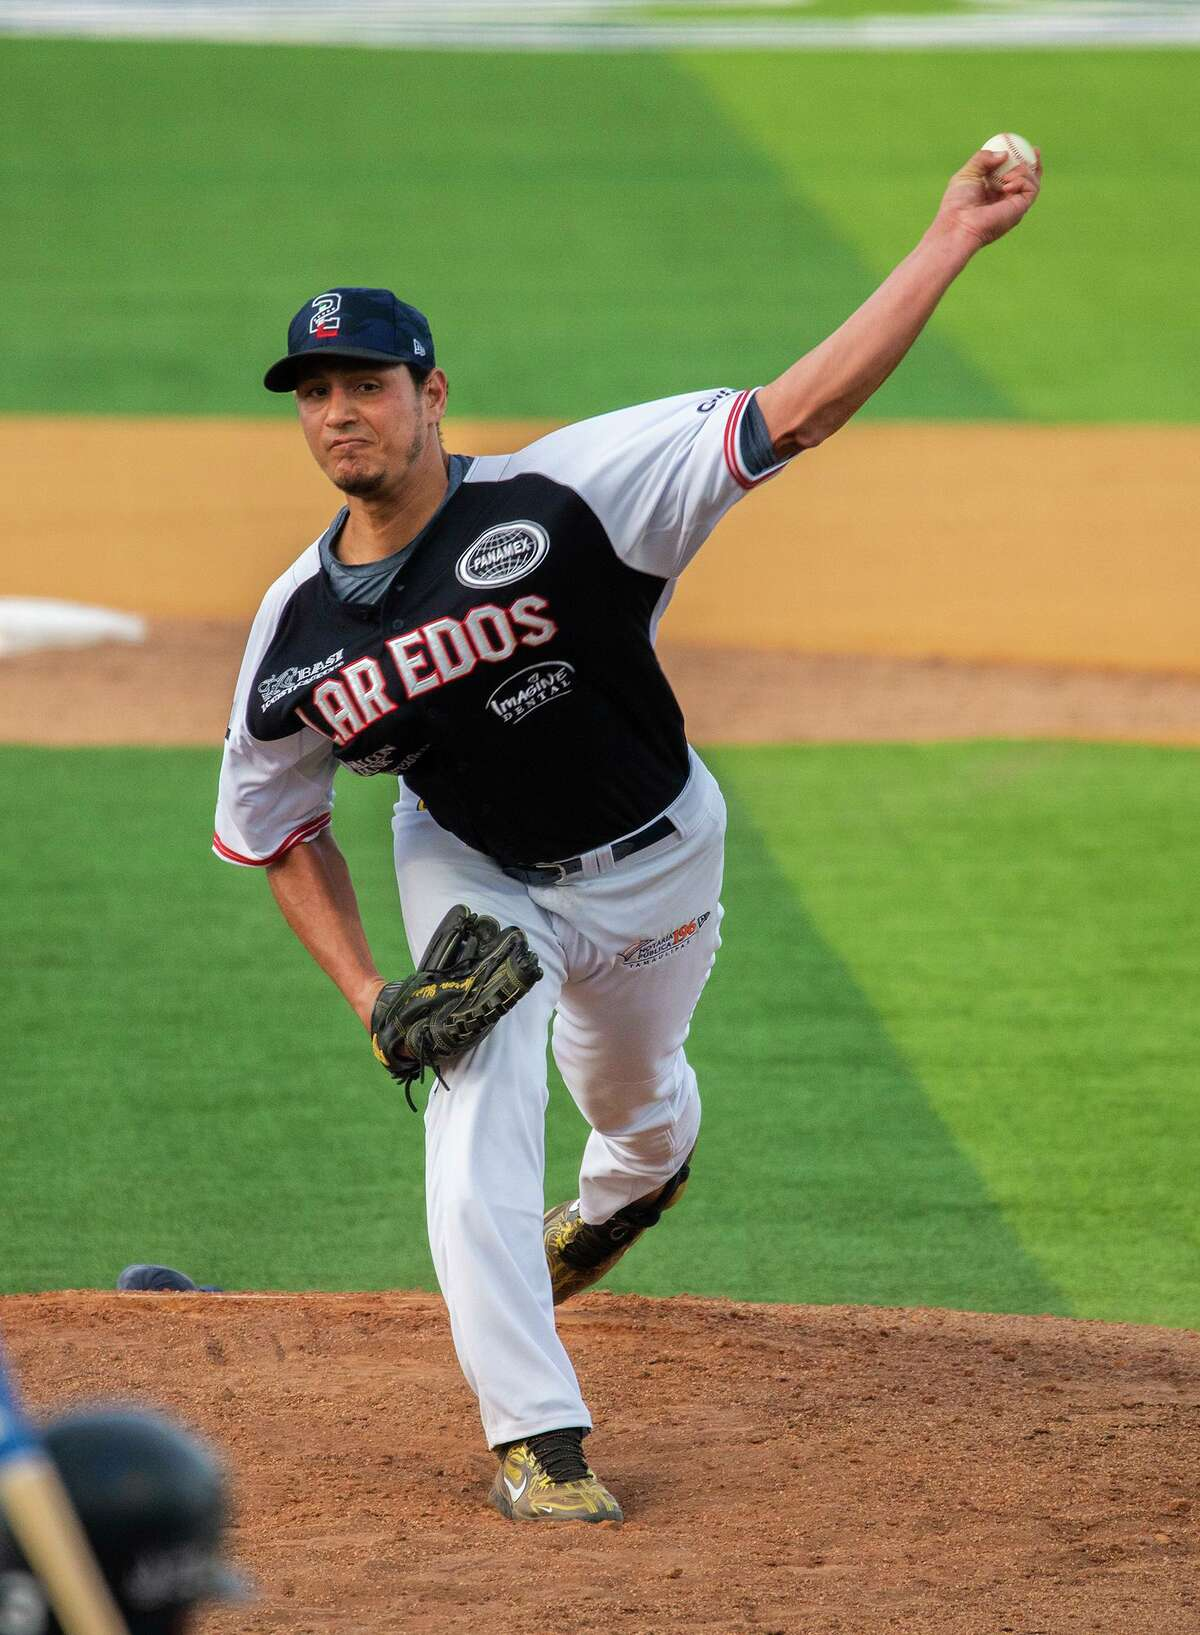 Wilfredo Ledezma and the Tecolotes Dos Laredos pitching staff have struggled in early innings of games this year.